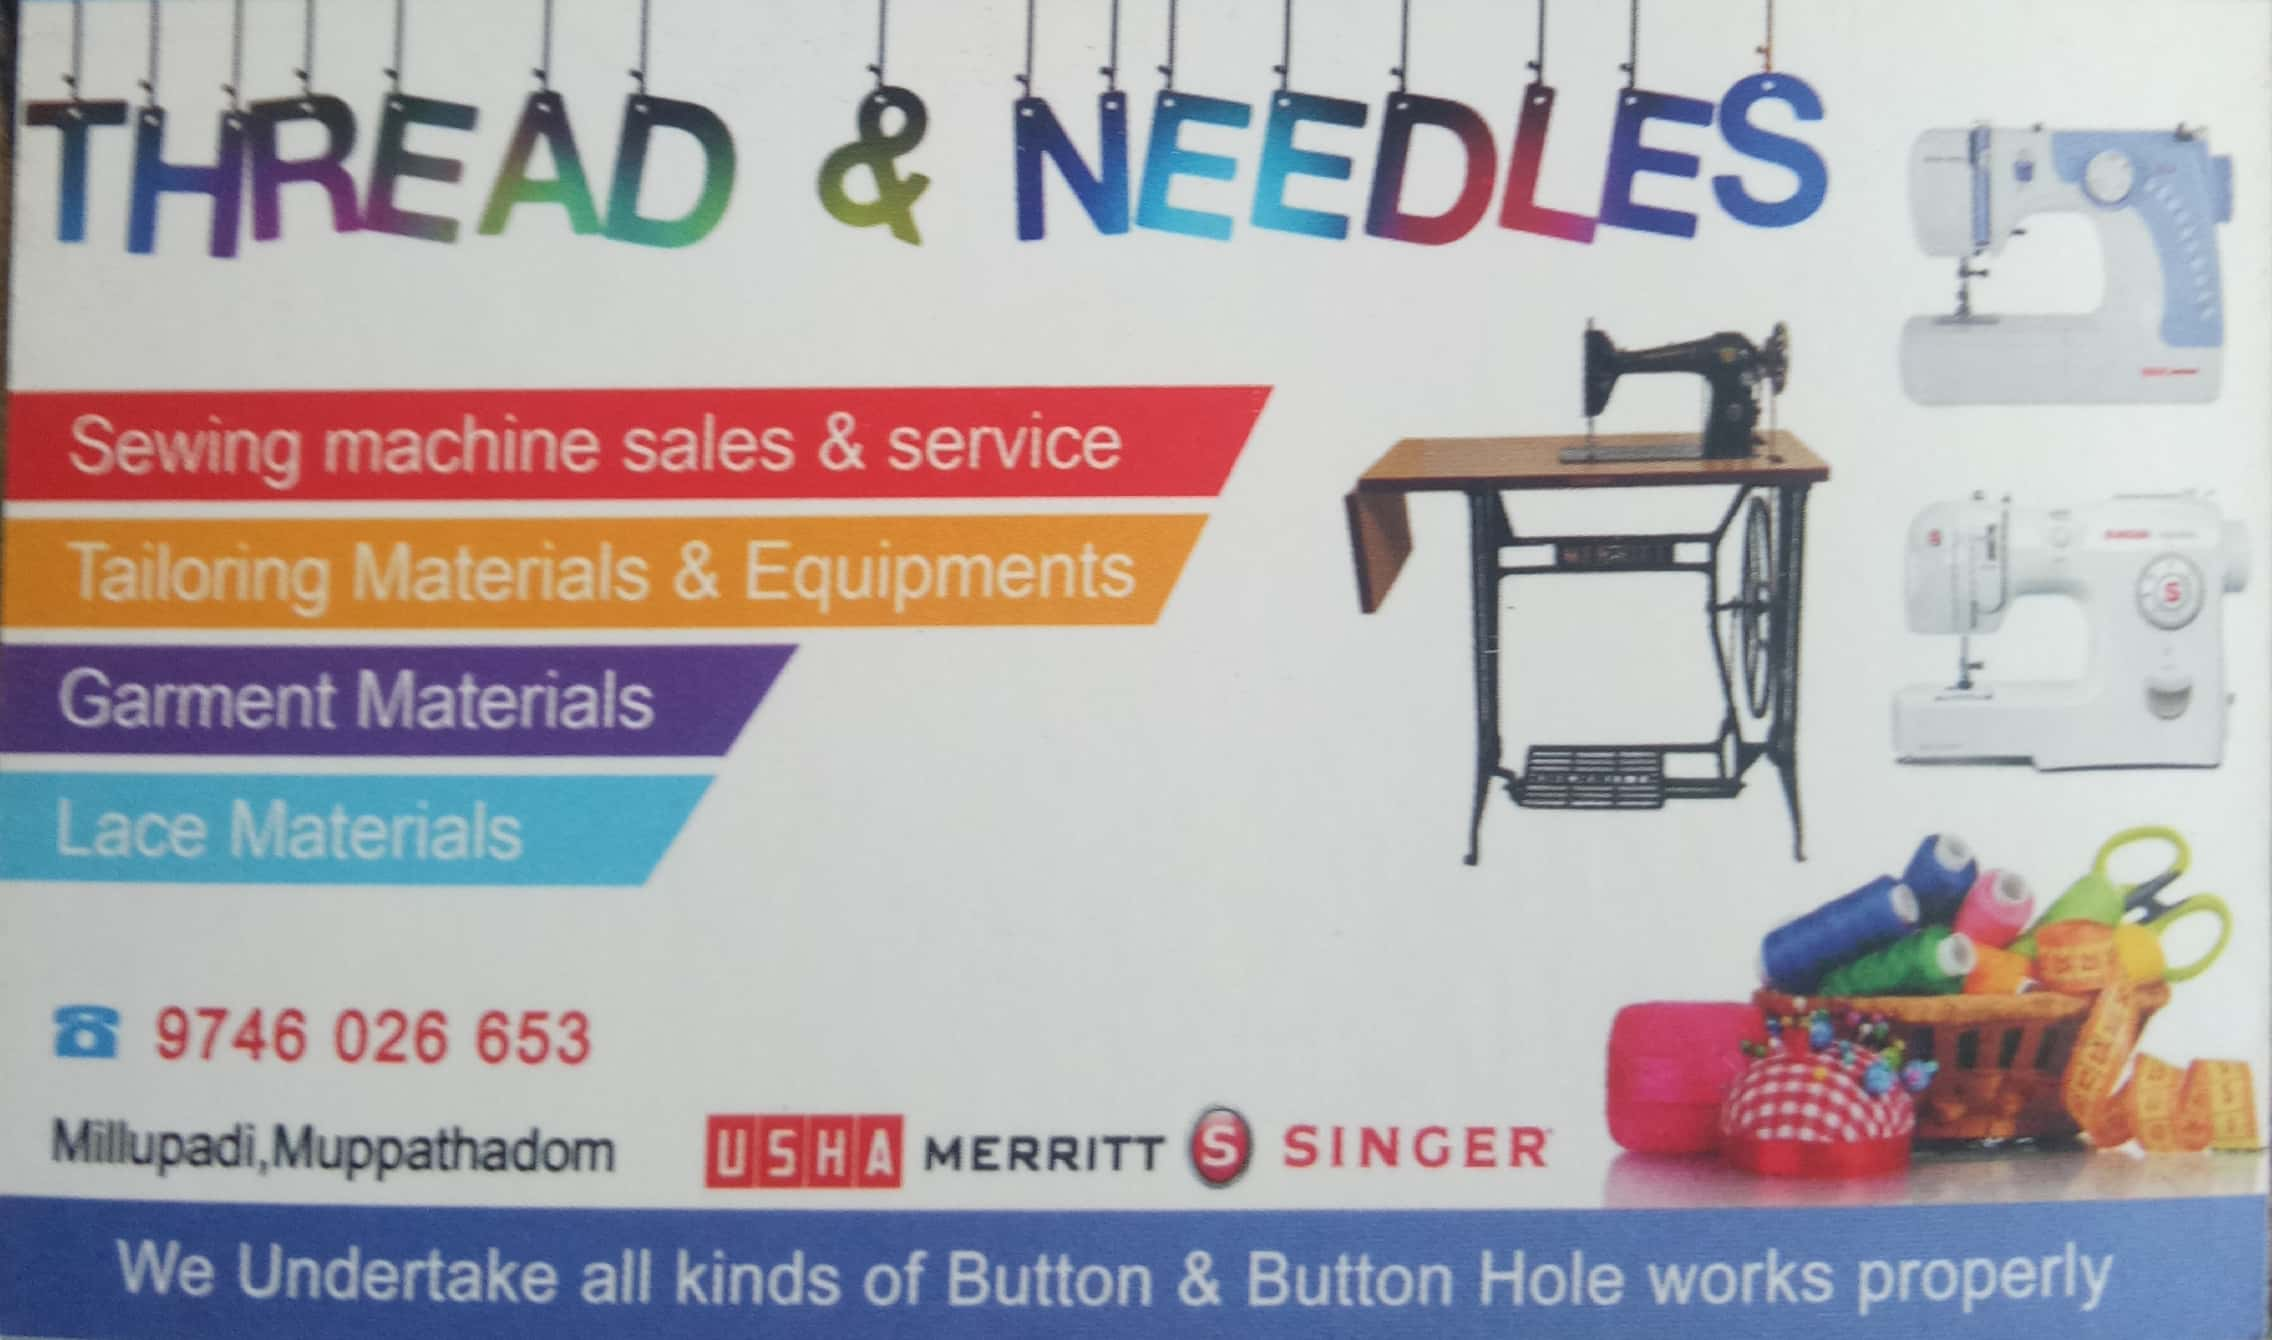 THREAD & NEEDLES, SEWING MACHINE & TAILORING MATERIALS,  service in Aluva, Ernakulam